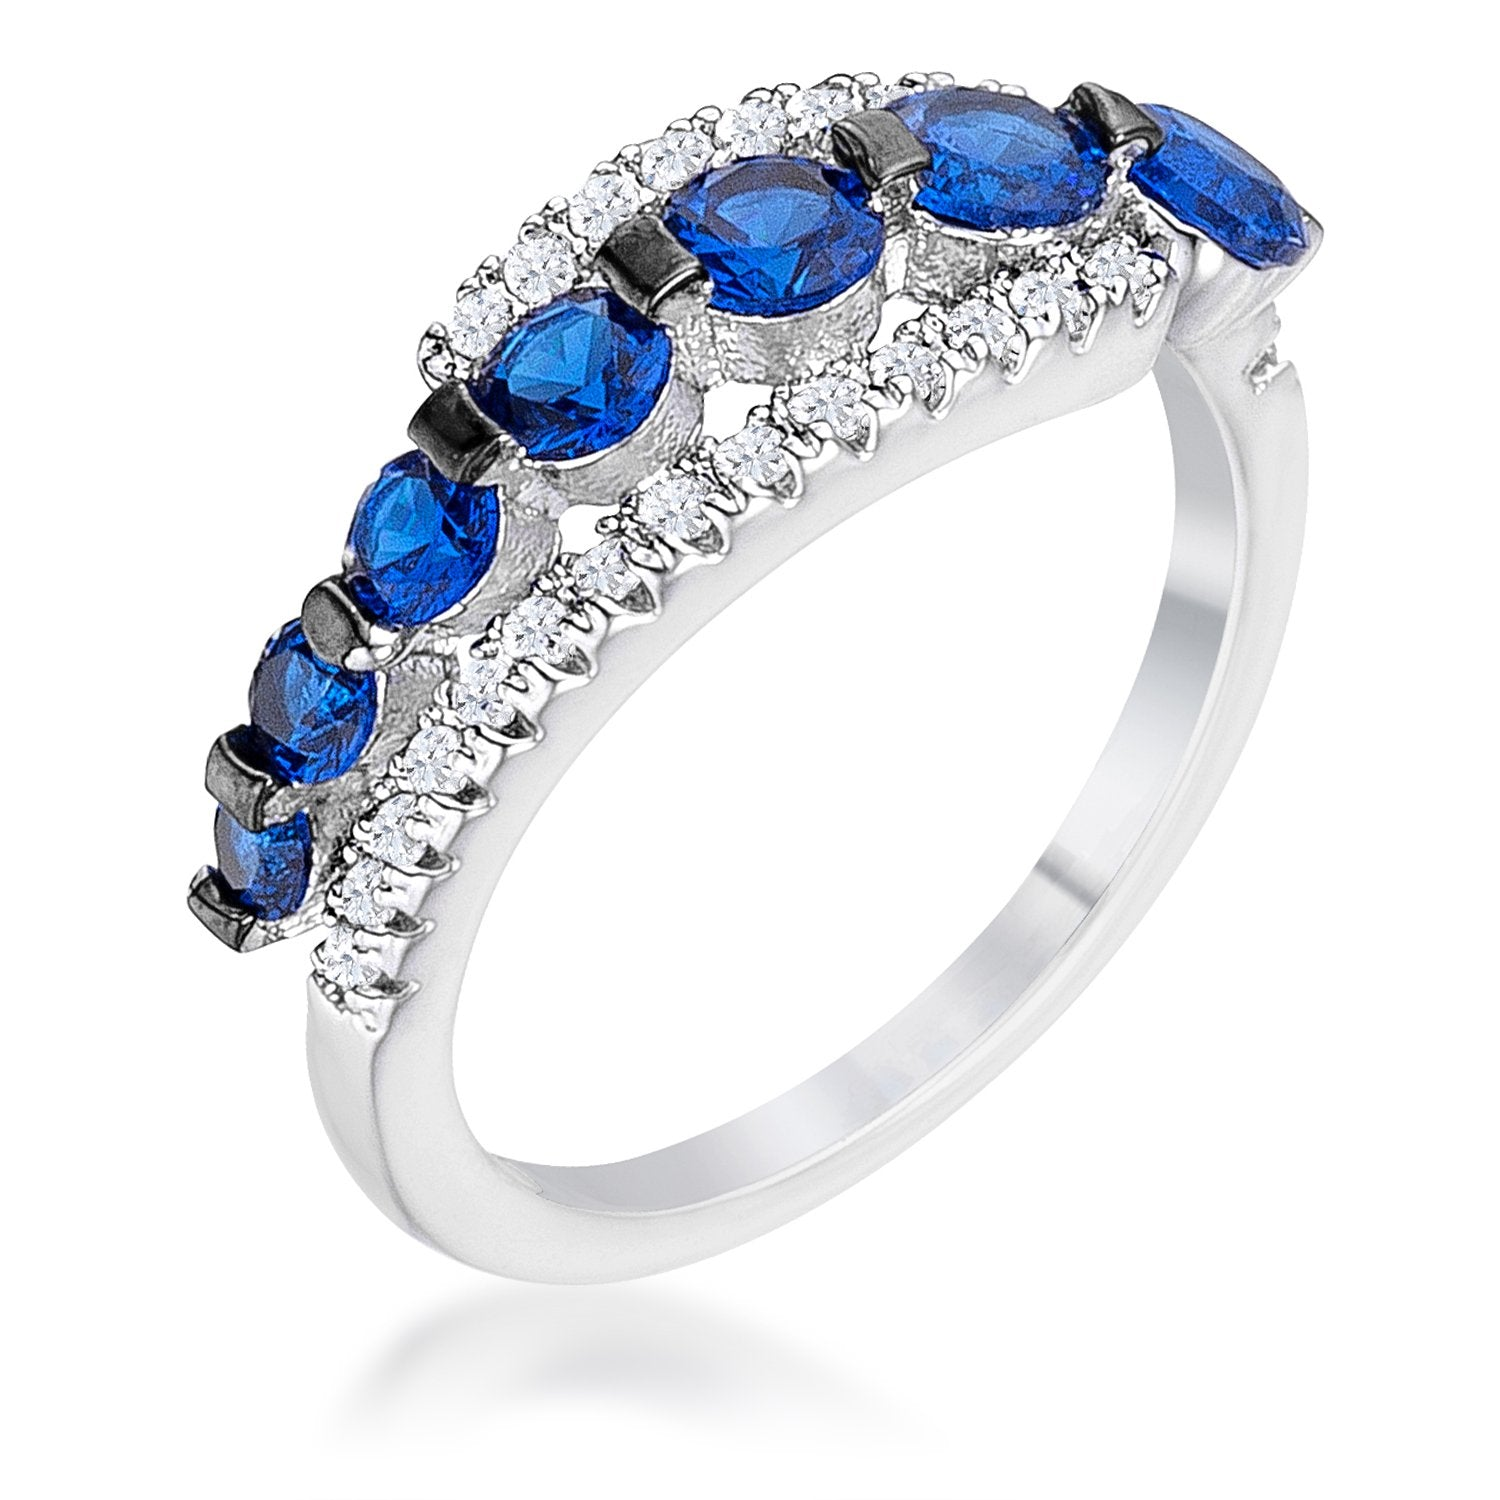 lord marquise ring half gold eternity sapphire blue of products white band bands wedding anniversary